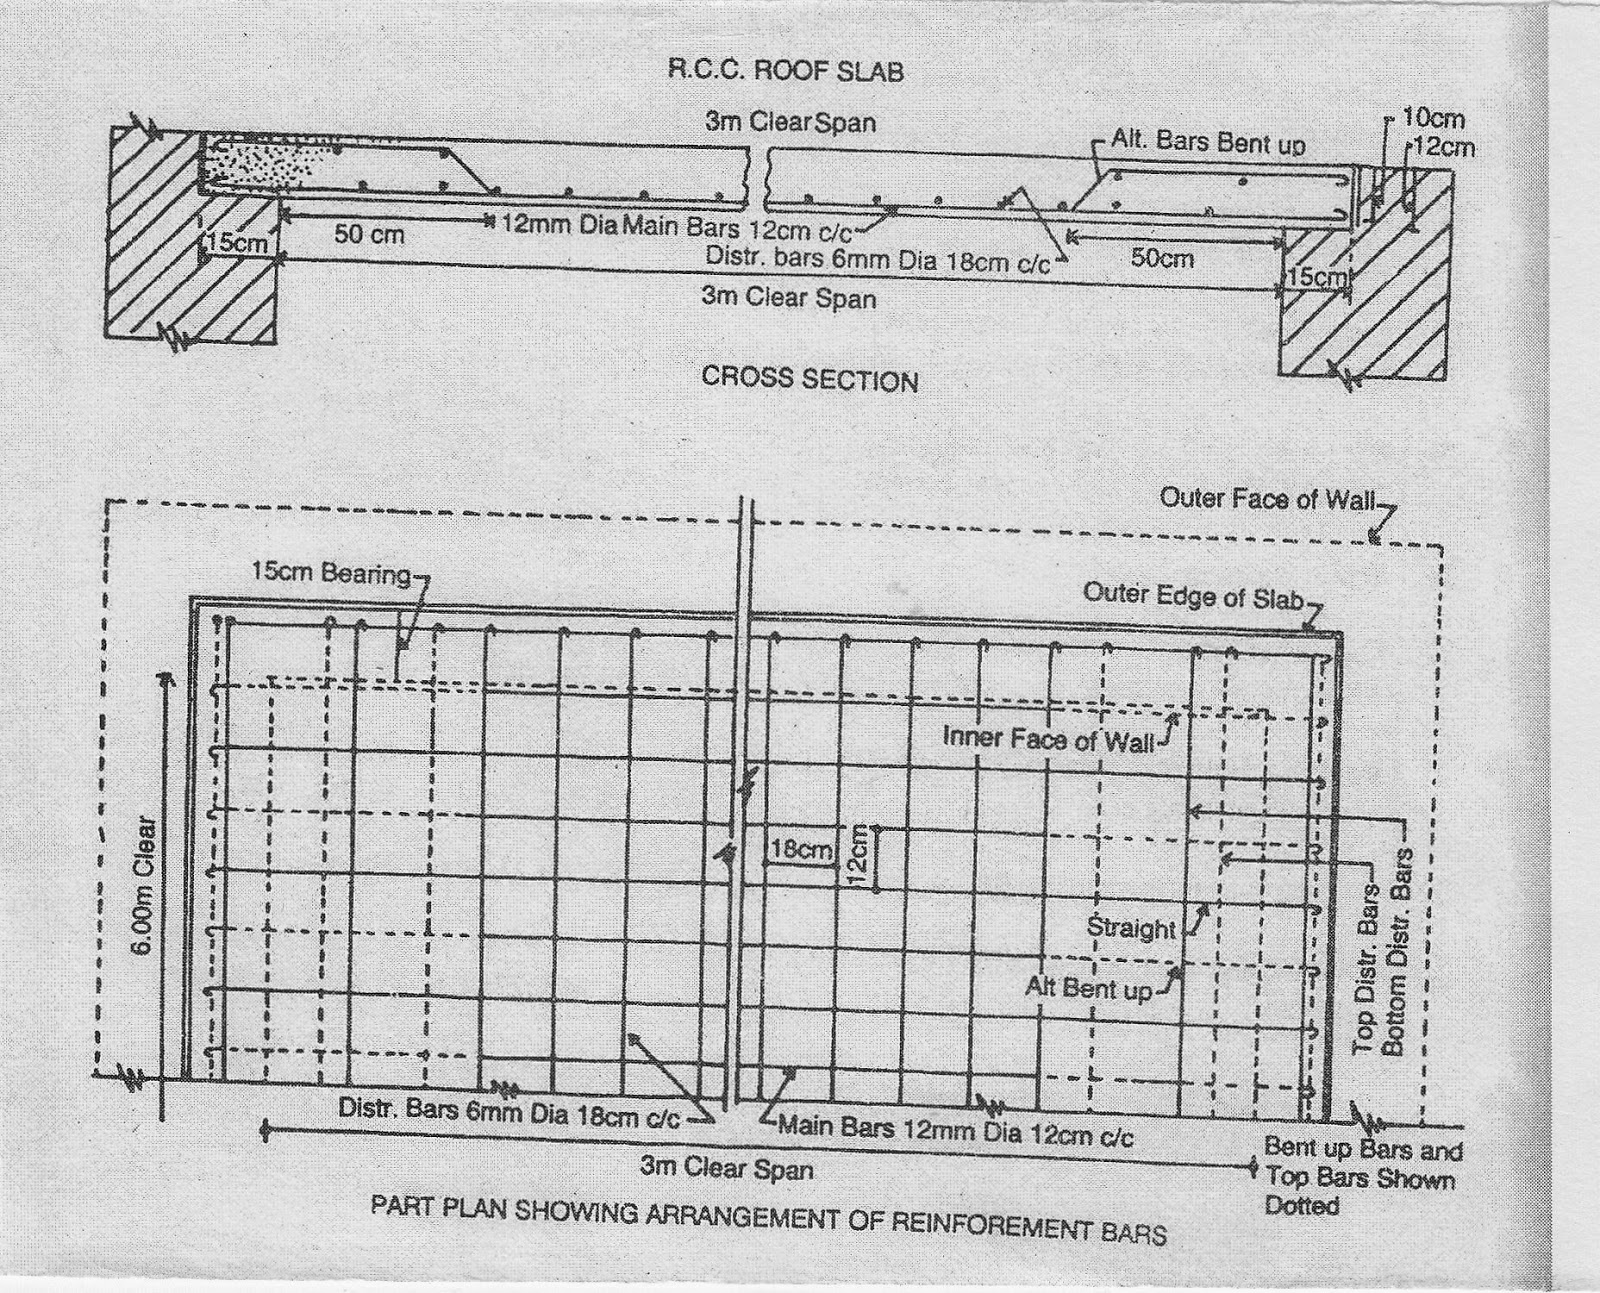 Rcc slab roof design example for Concrete slab house plans